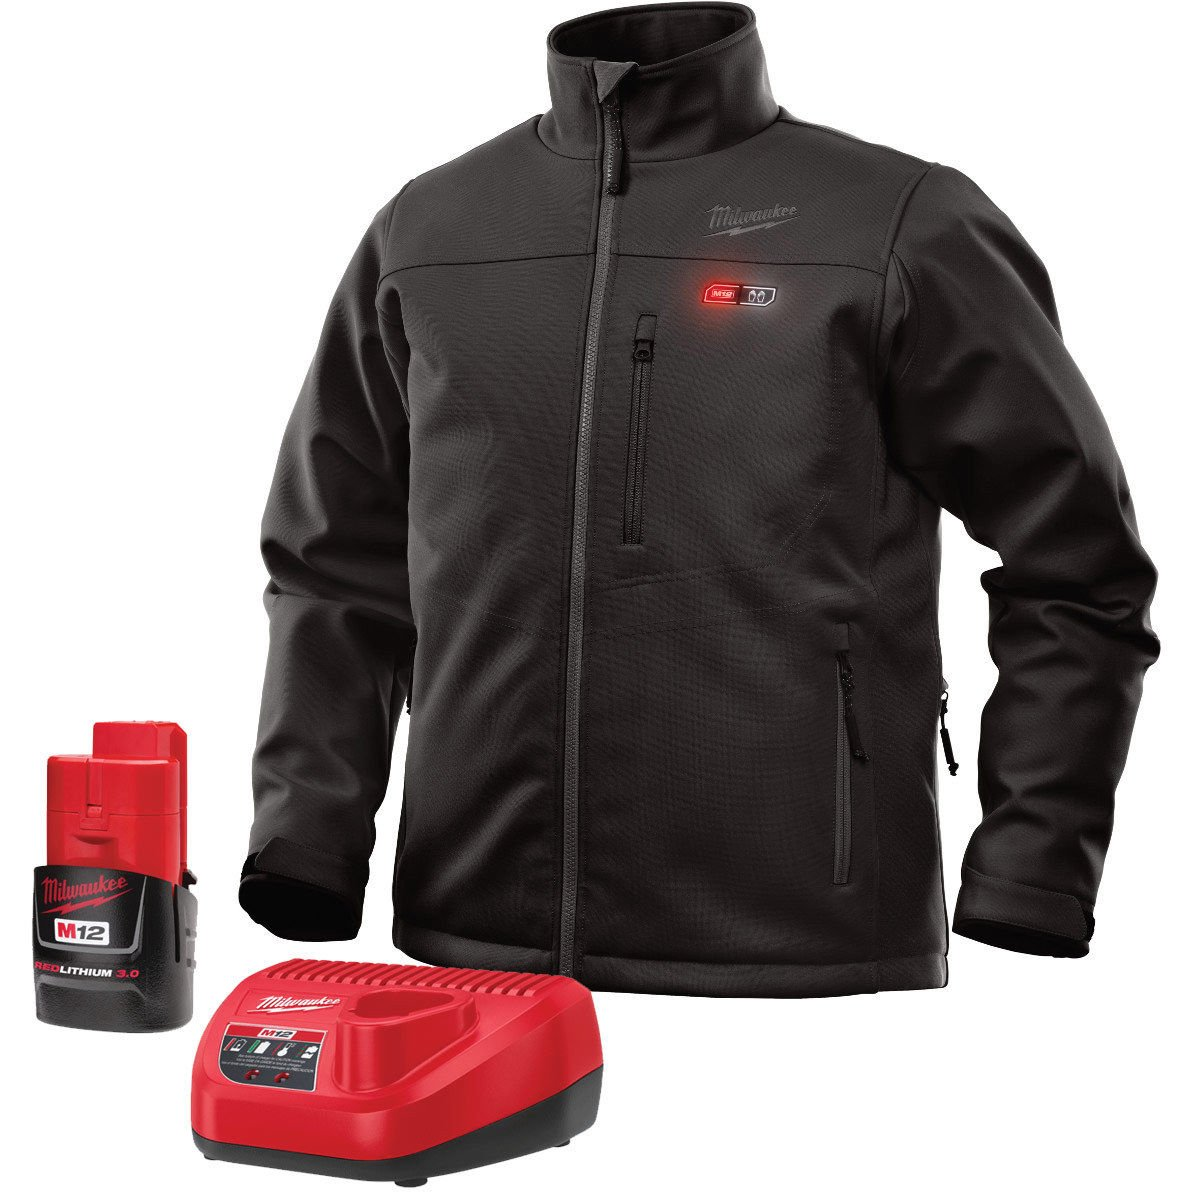 Milwaukee Jacket KIT M12 12V Lithium-Ion Heated Front and Back Heat Zones All Sizes and Colors - Battery and Charger Included (Extra Large, Black) by Milwaukee